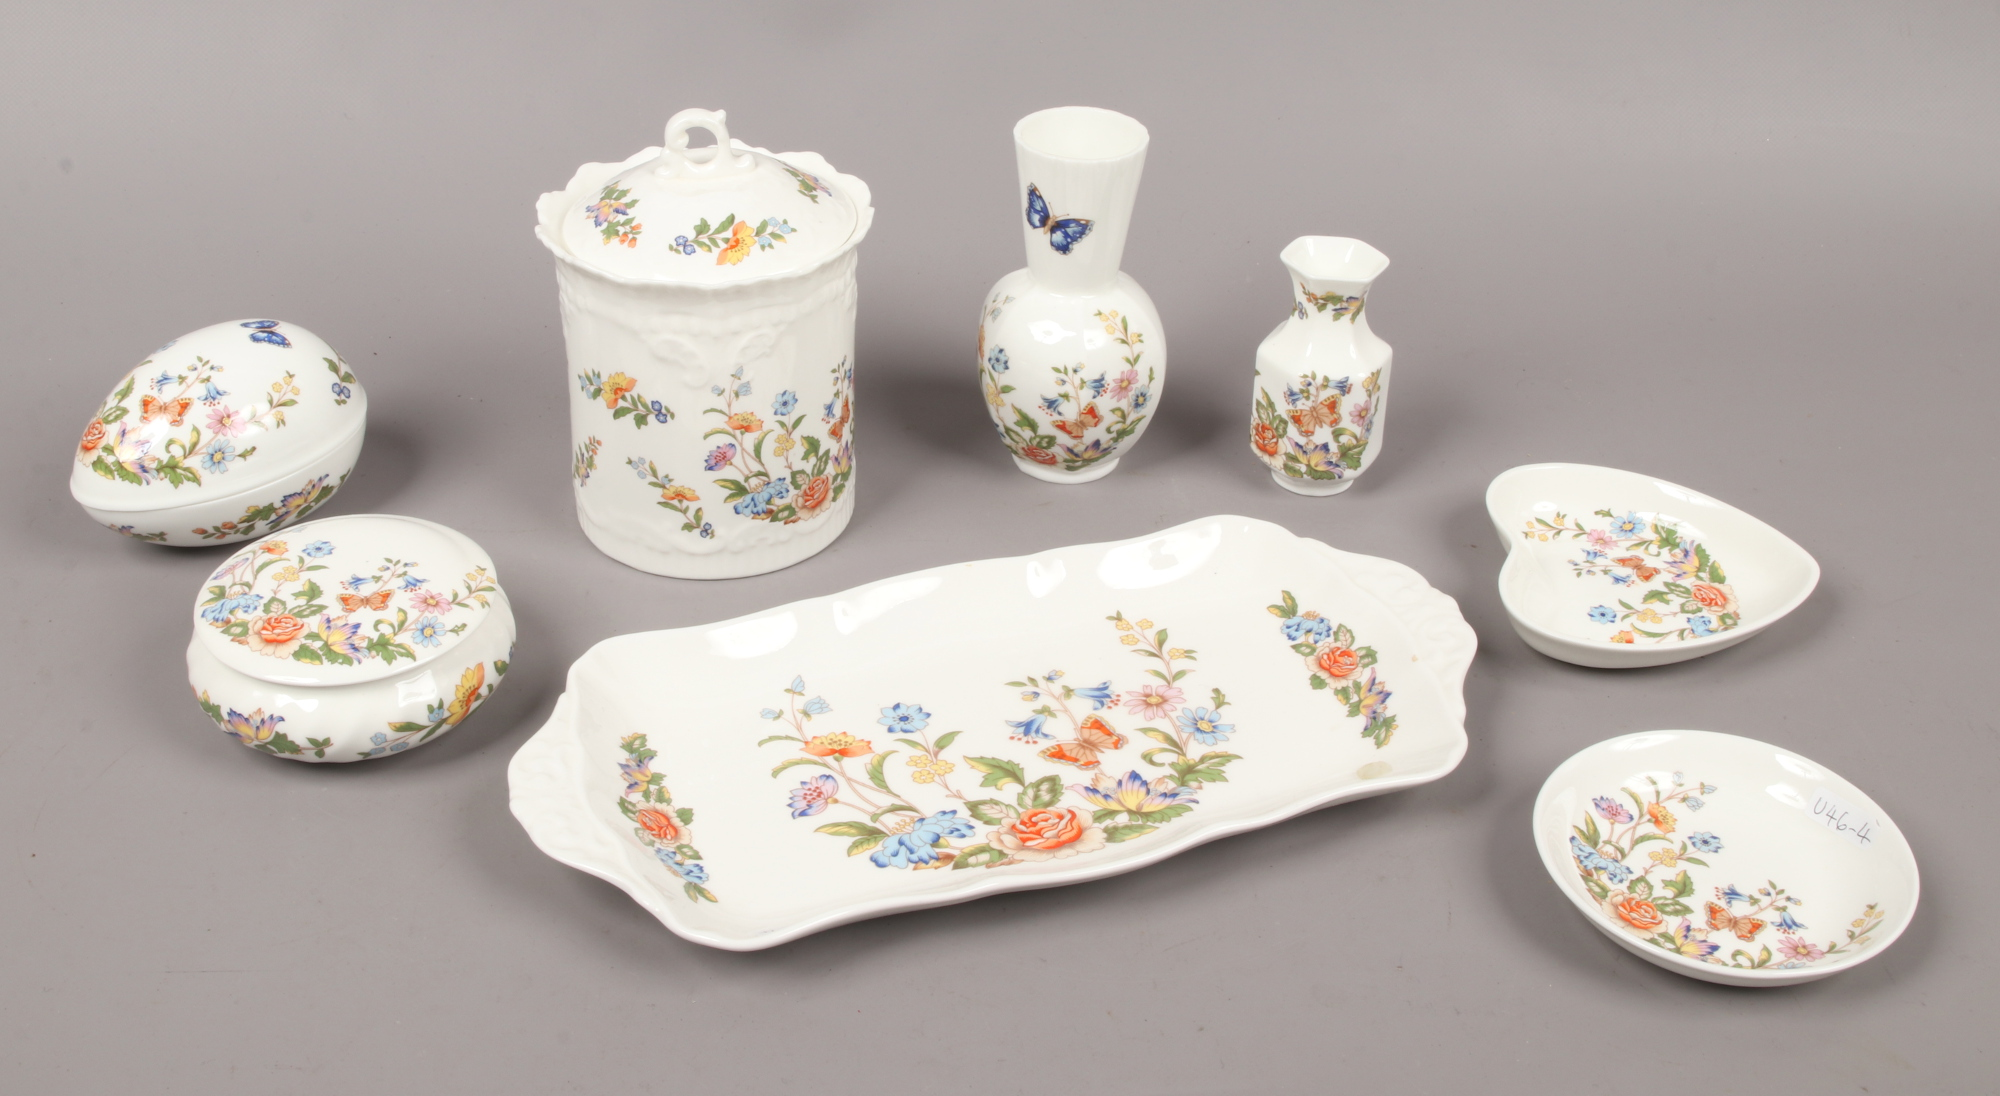 Lot 39 - A quantity of Aynsley bone china in The Cottage Garden design including trinket dishes and vases